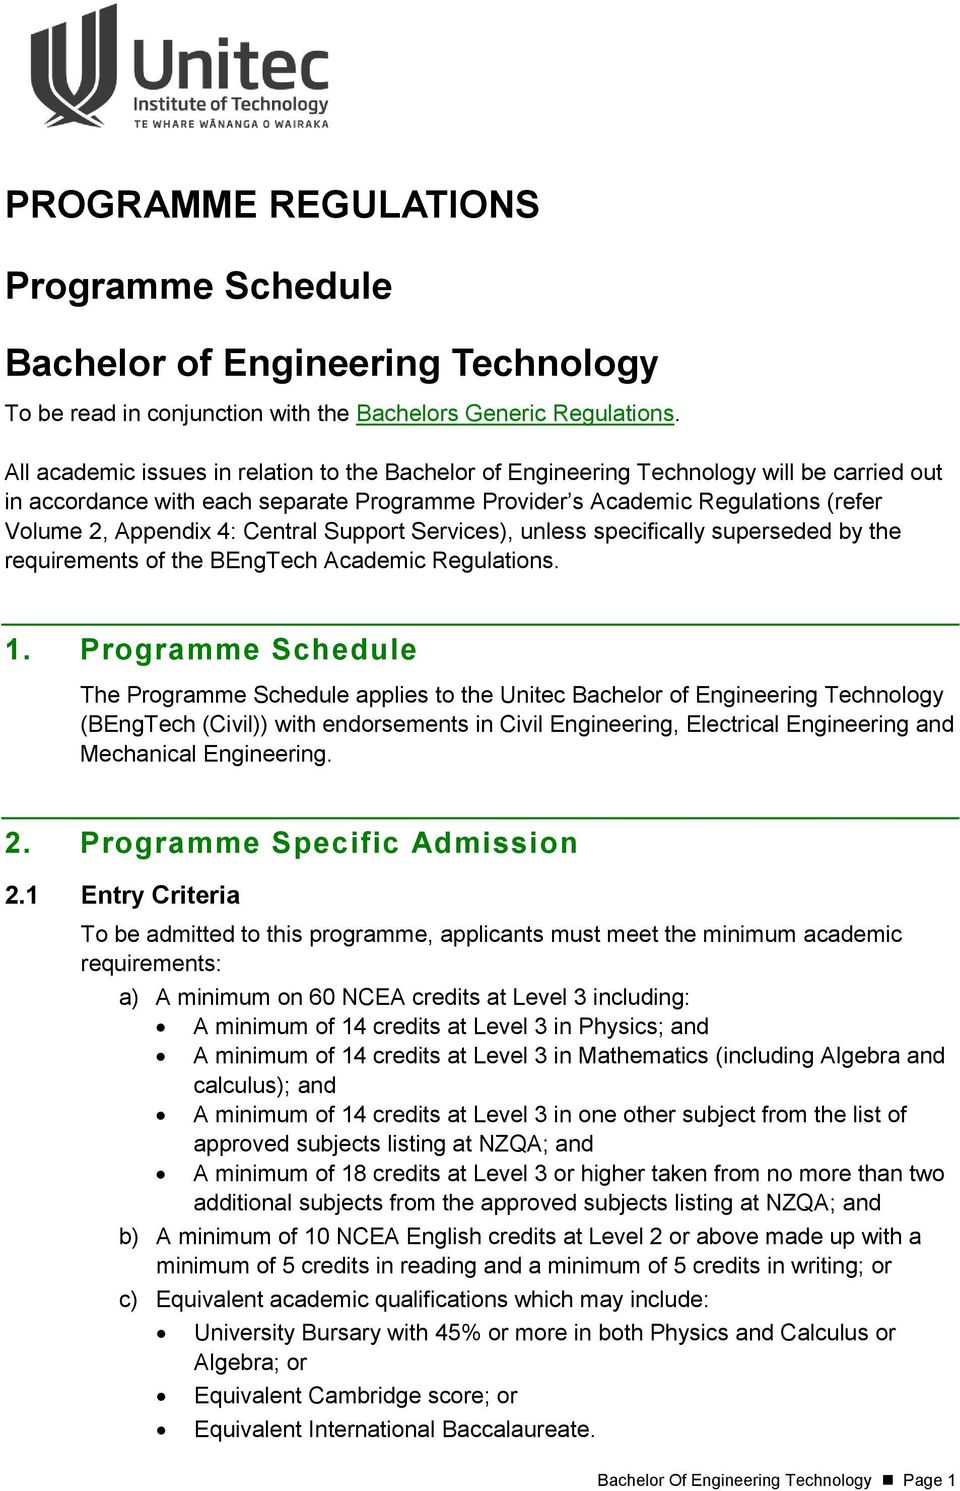 programme regulations. programme schedule. bachelor of engineering